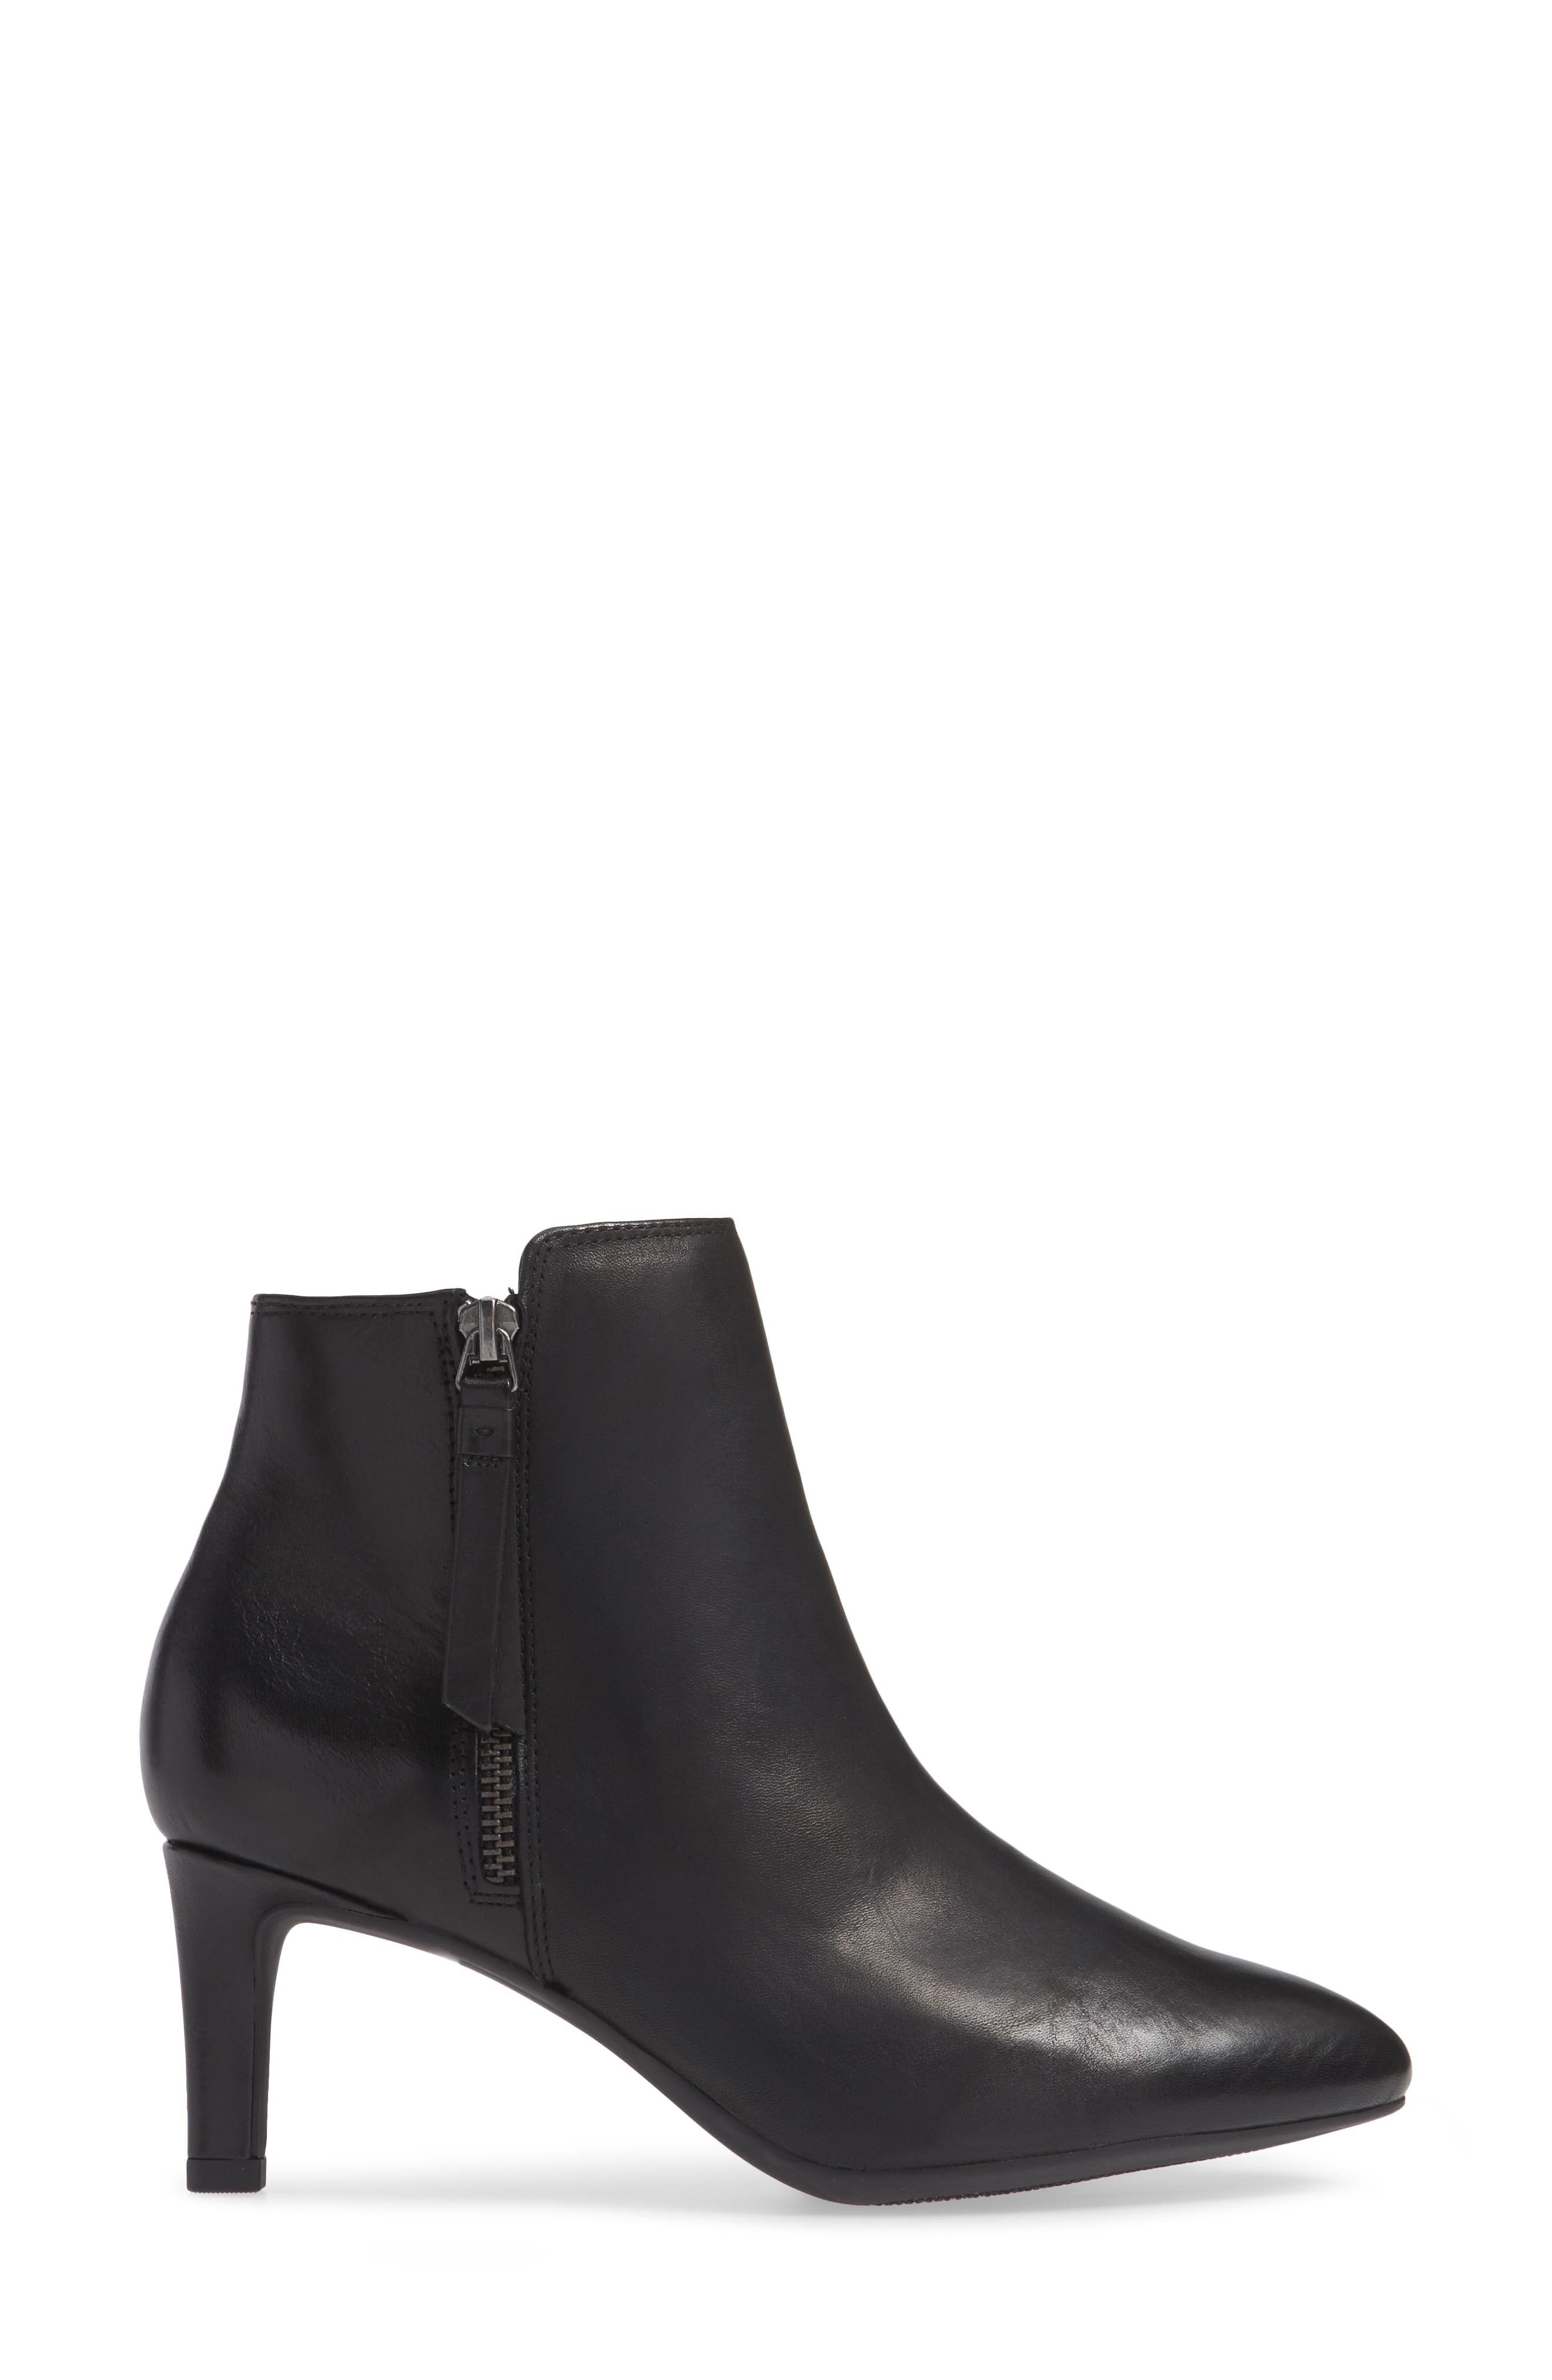 Calla Blossom Bootie,                             Alternate thumbnail 3, color,                             BLACK LEATHER